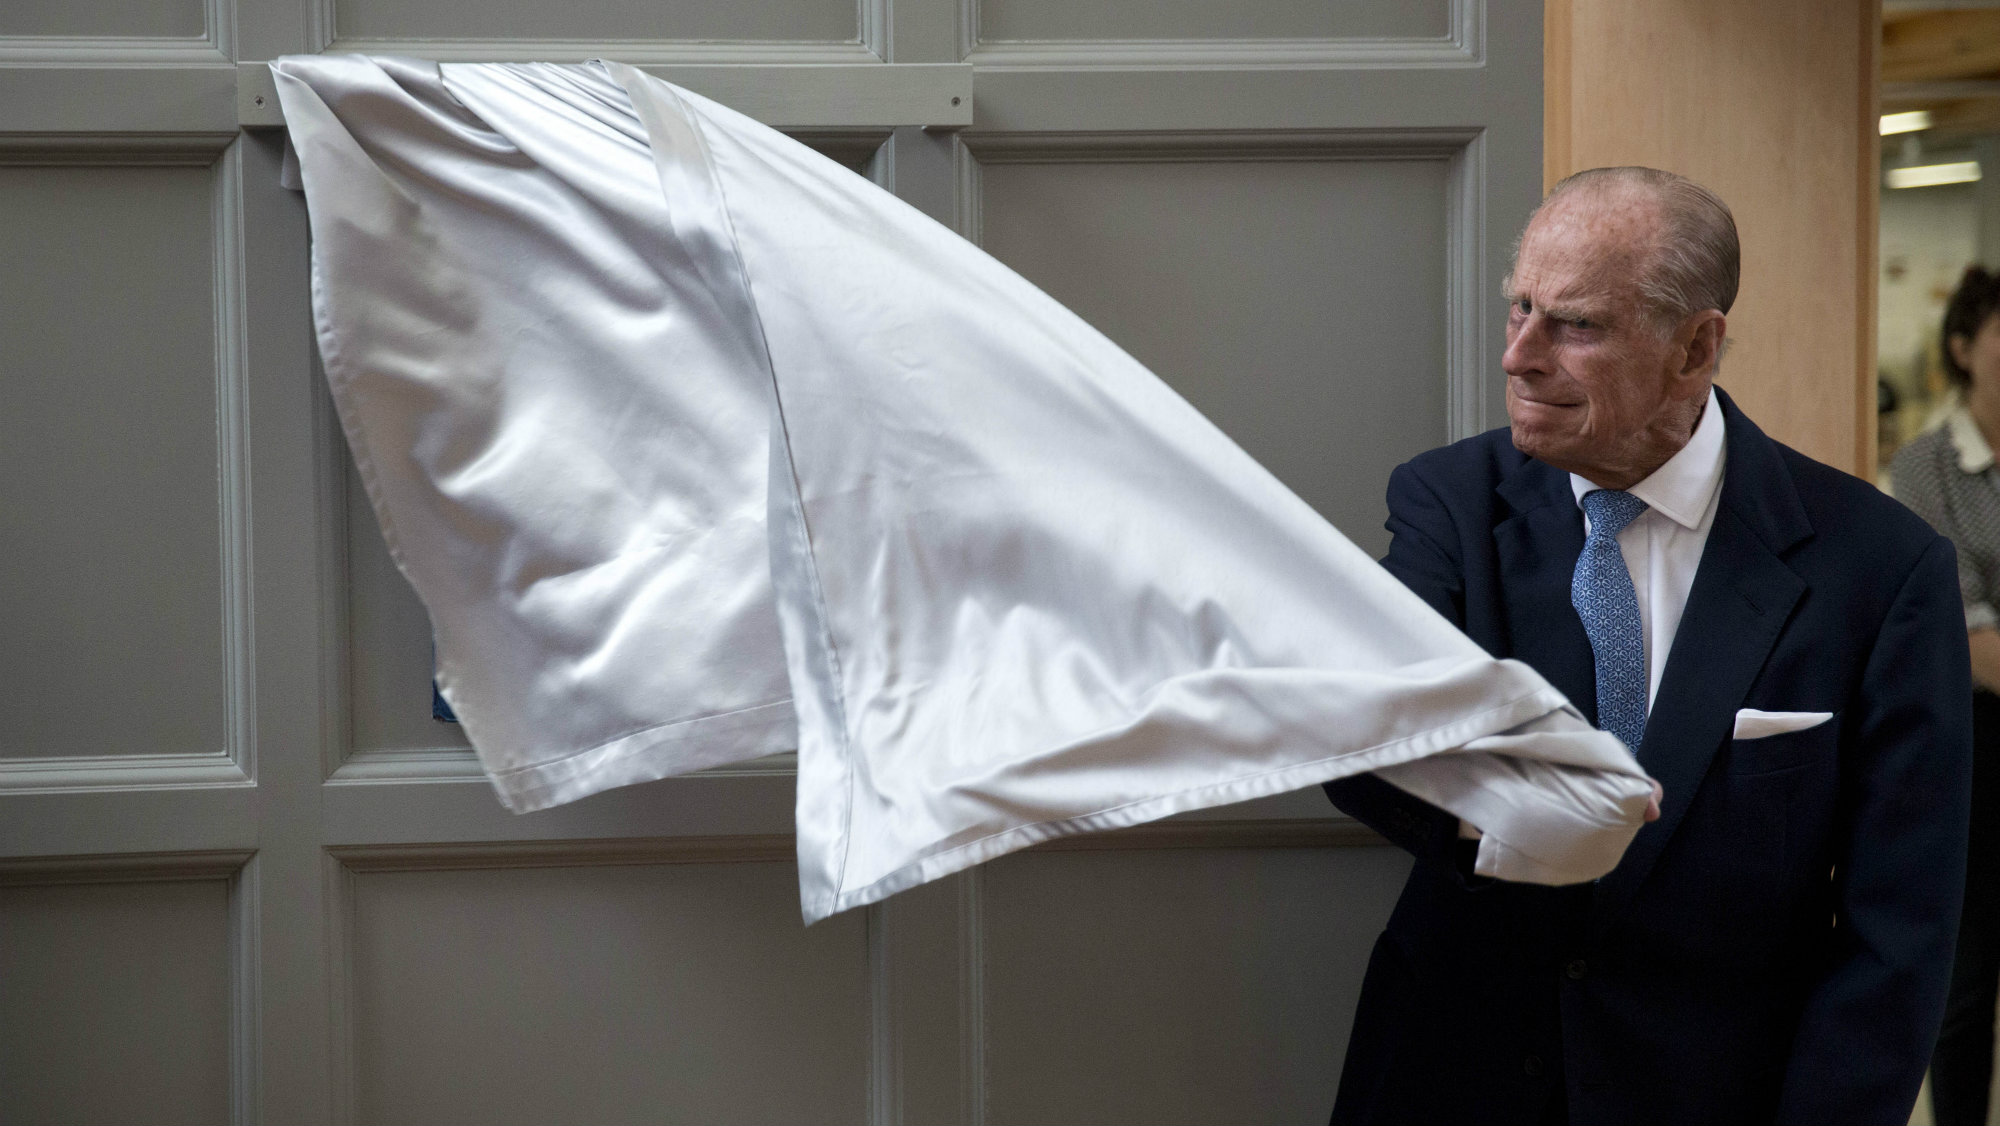 Britain's Prince Philip, the husband of Queen Elizabeth II, pulls the curtain to unveil a plaque at the end of his visit to Richmond Adult Community College in Richmond, south west London, Monday, June 8, 2015.